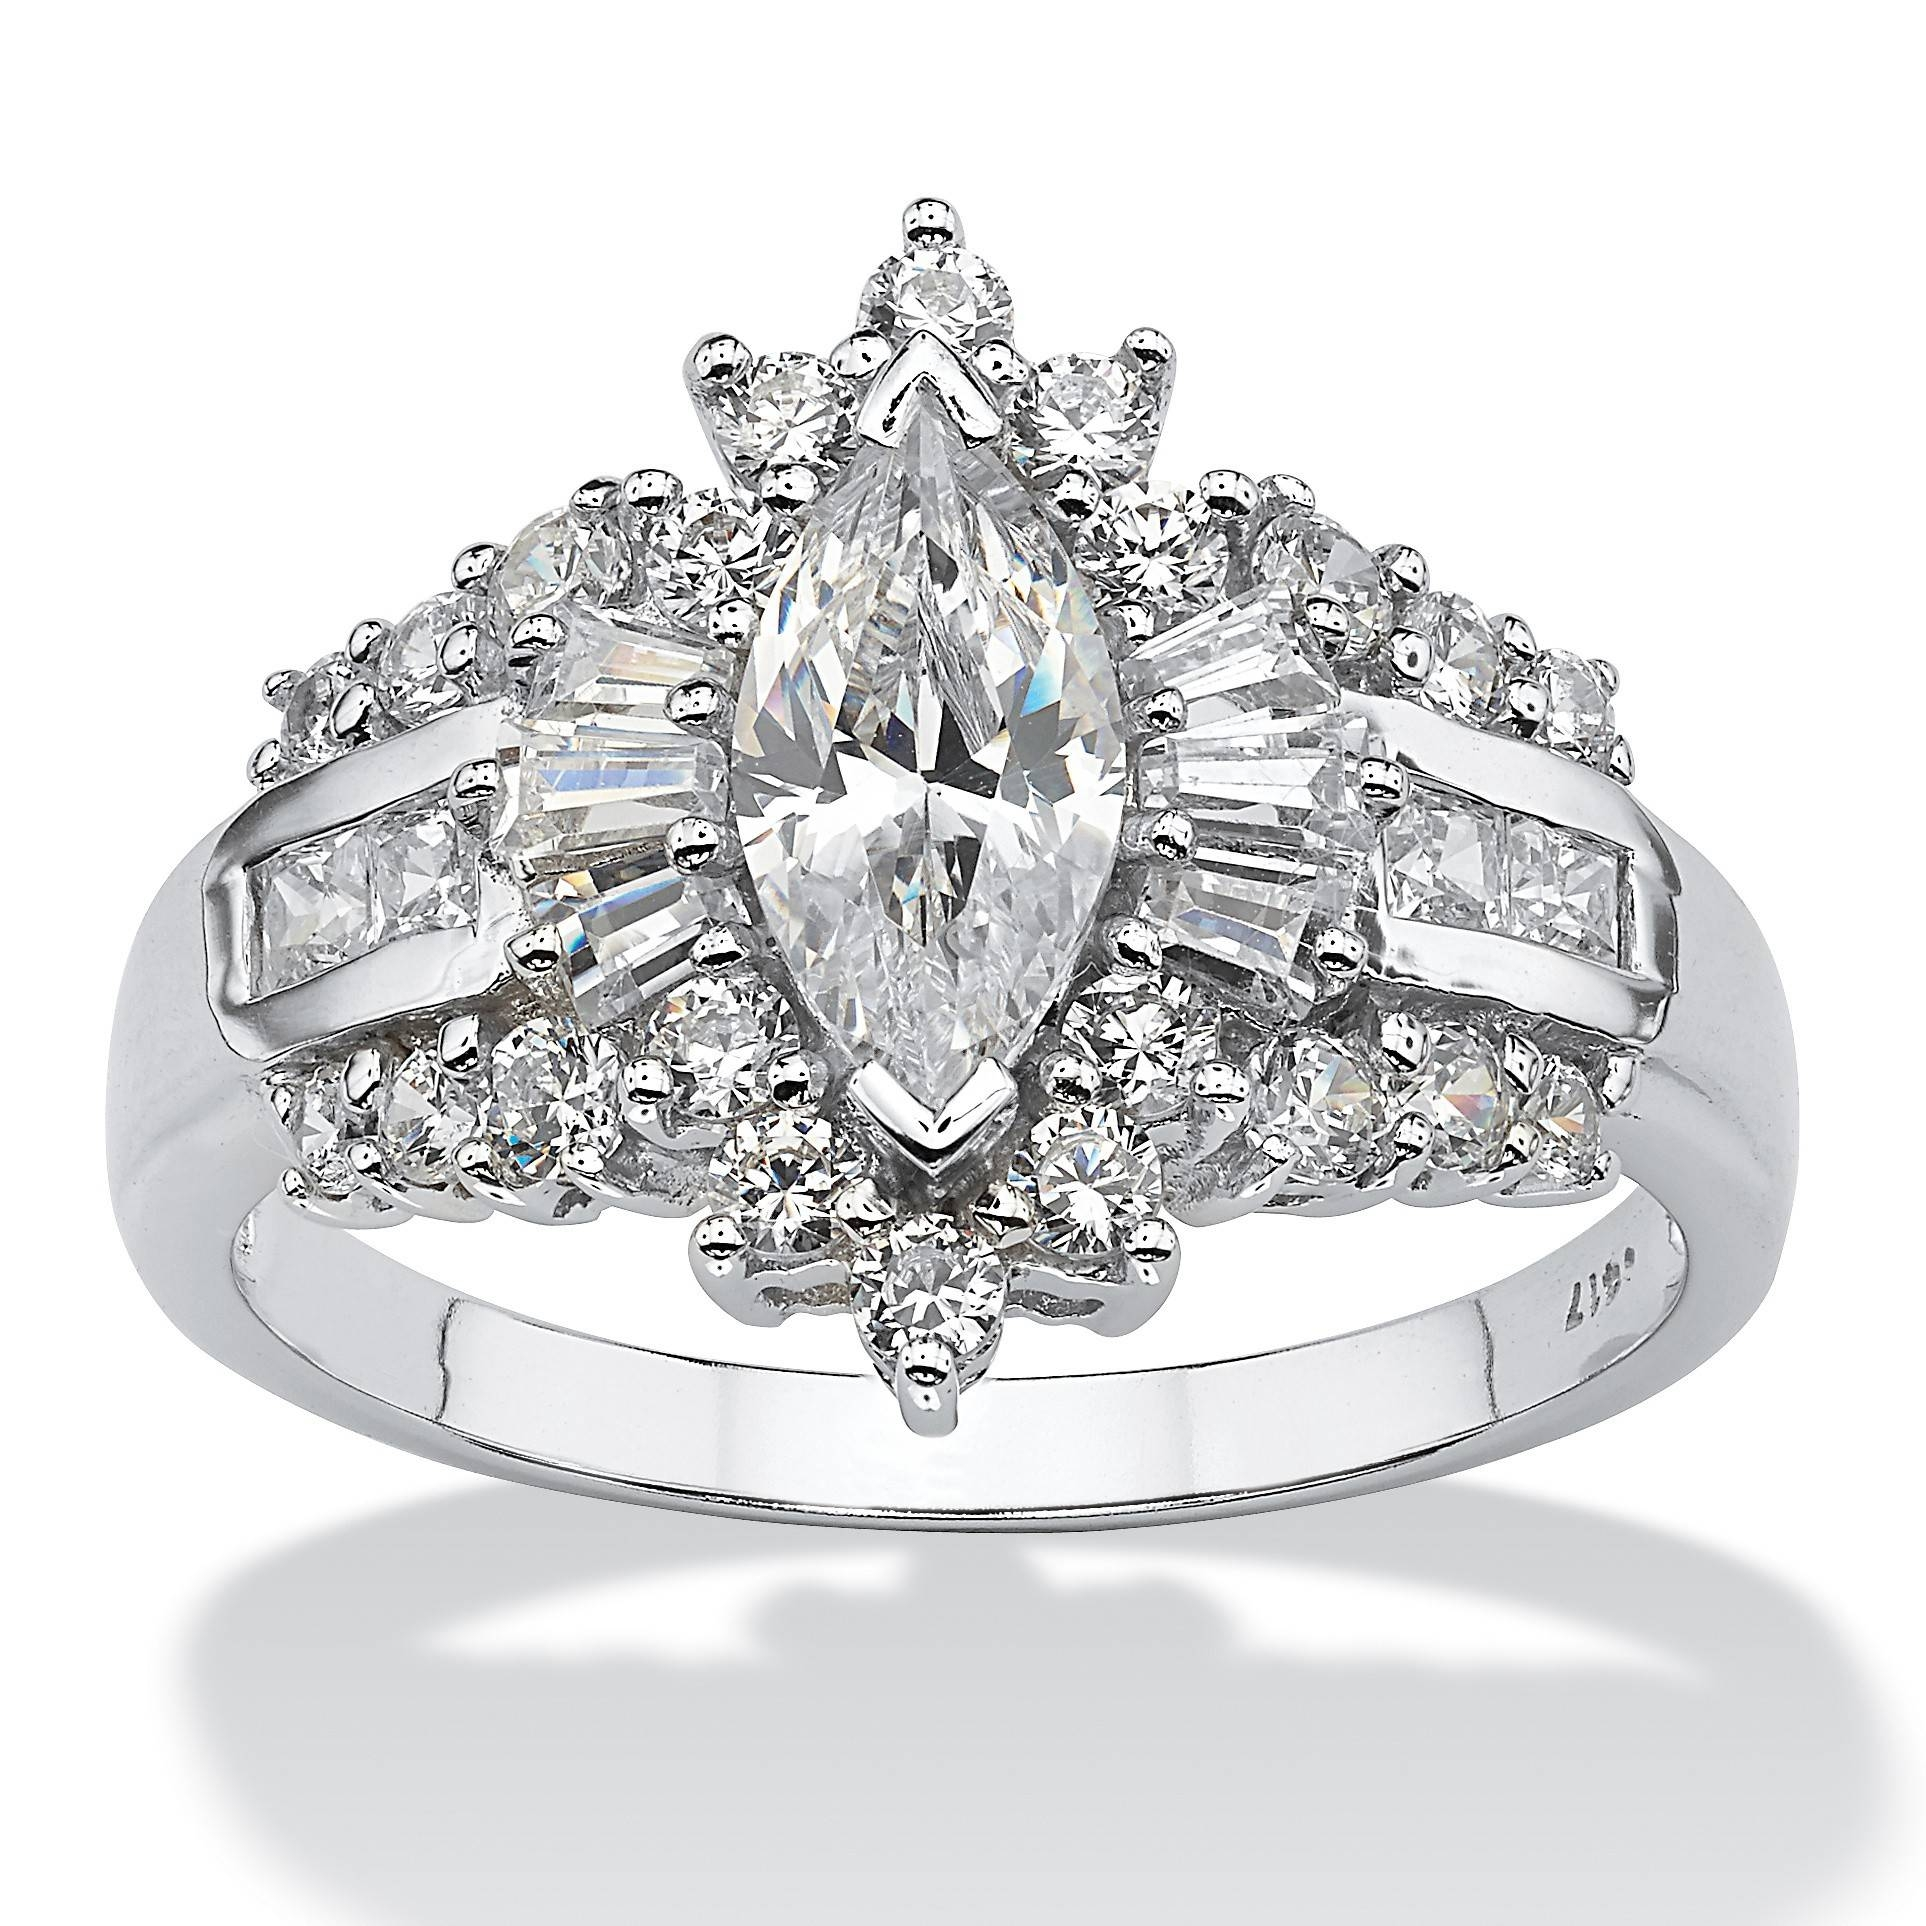 2.19 Tcw Marquise Cut Cubic Zirconia With Round And Baguette With 10K Gold Cubic Zirconia Engagement Rings (Gallery 3 of 15)